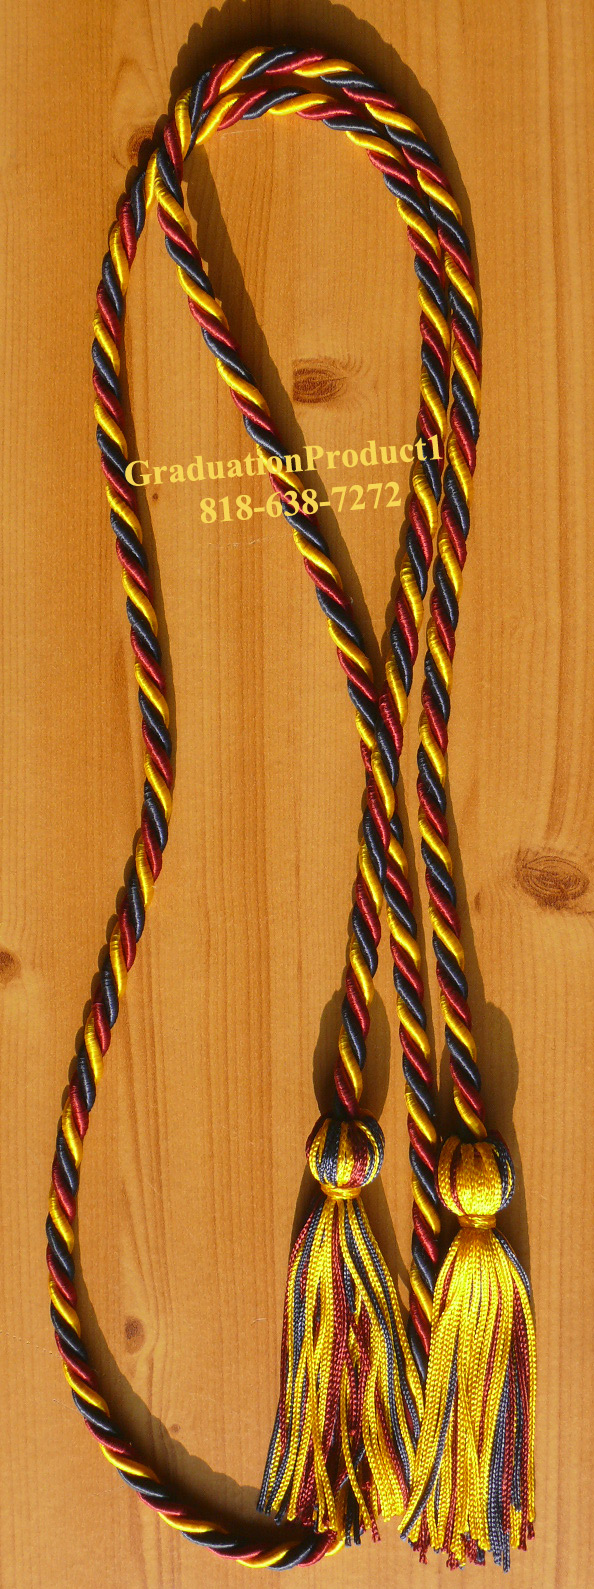 Gold Navy Blue Maroon Gold Honor Cords